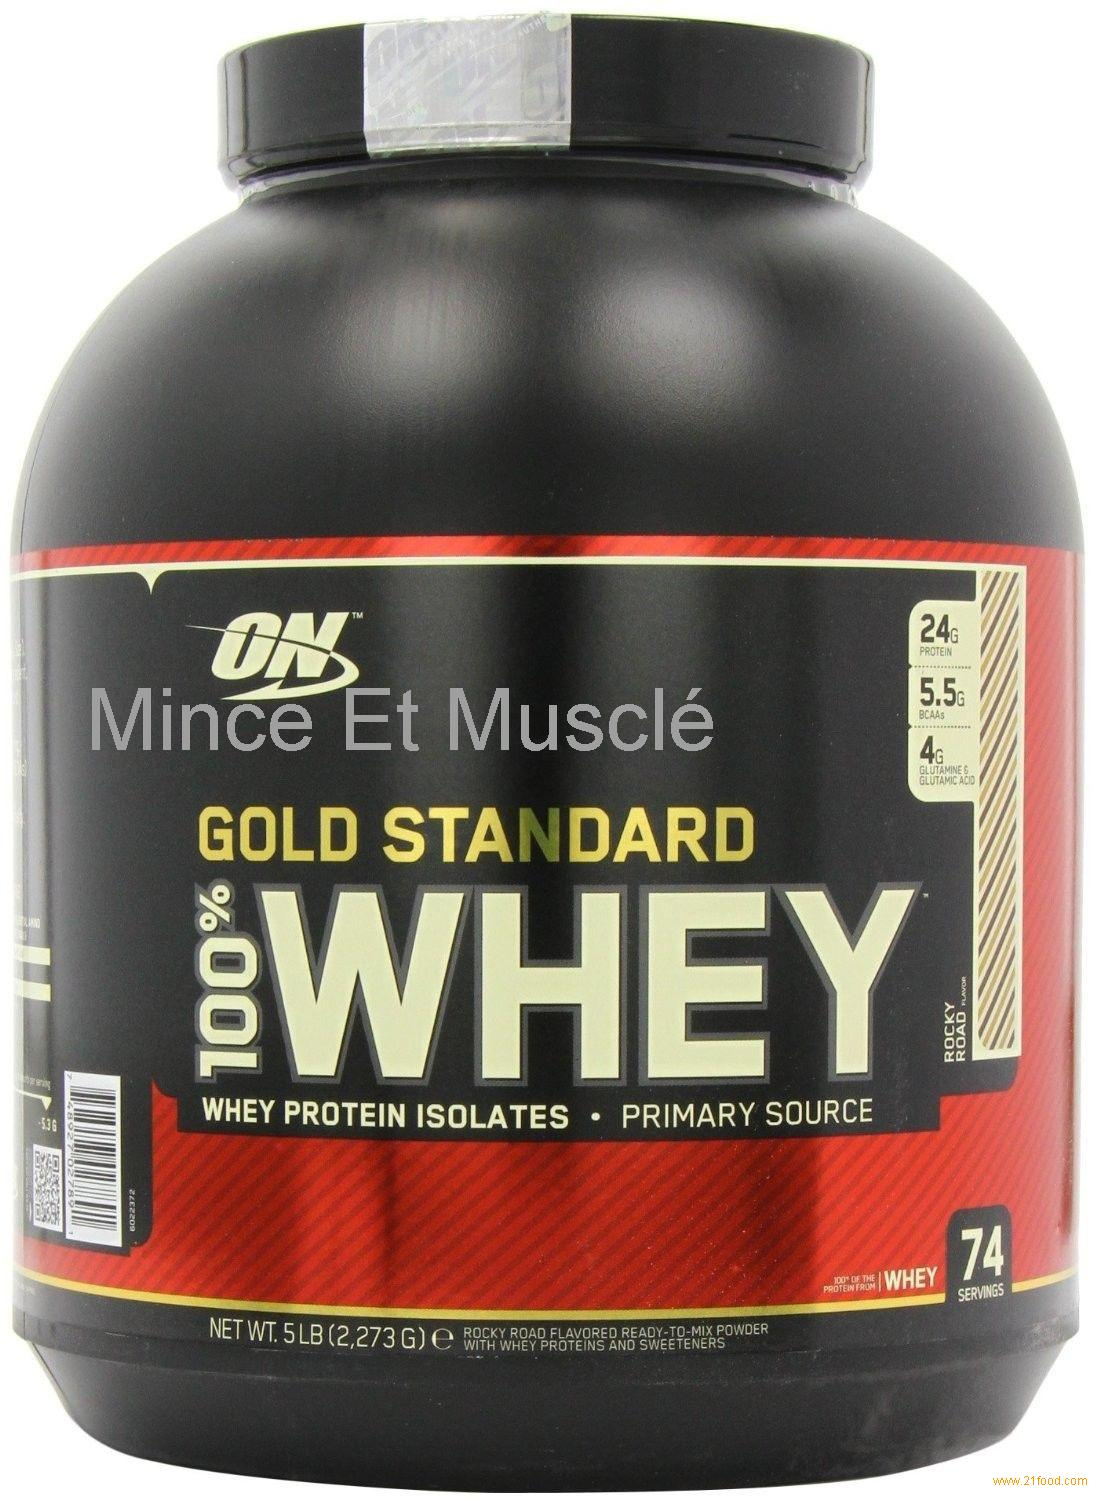 Find Optimum Nutrition products like Gold Standard % Whey Protein & Serious Mass at GNC. Optimum Nutrition offers some of the best whey protein to support your goals. GNC. FREE SHIPPING on Orders of $49+ Auto-deliver & Save 10% right arrow. myGNCRewards. My Account. My Account.